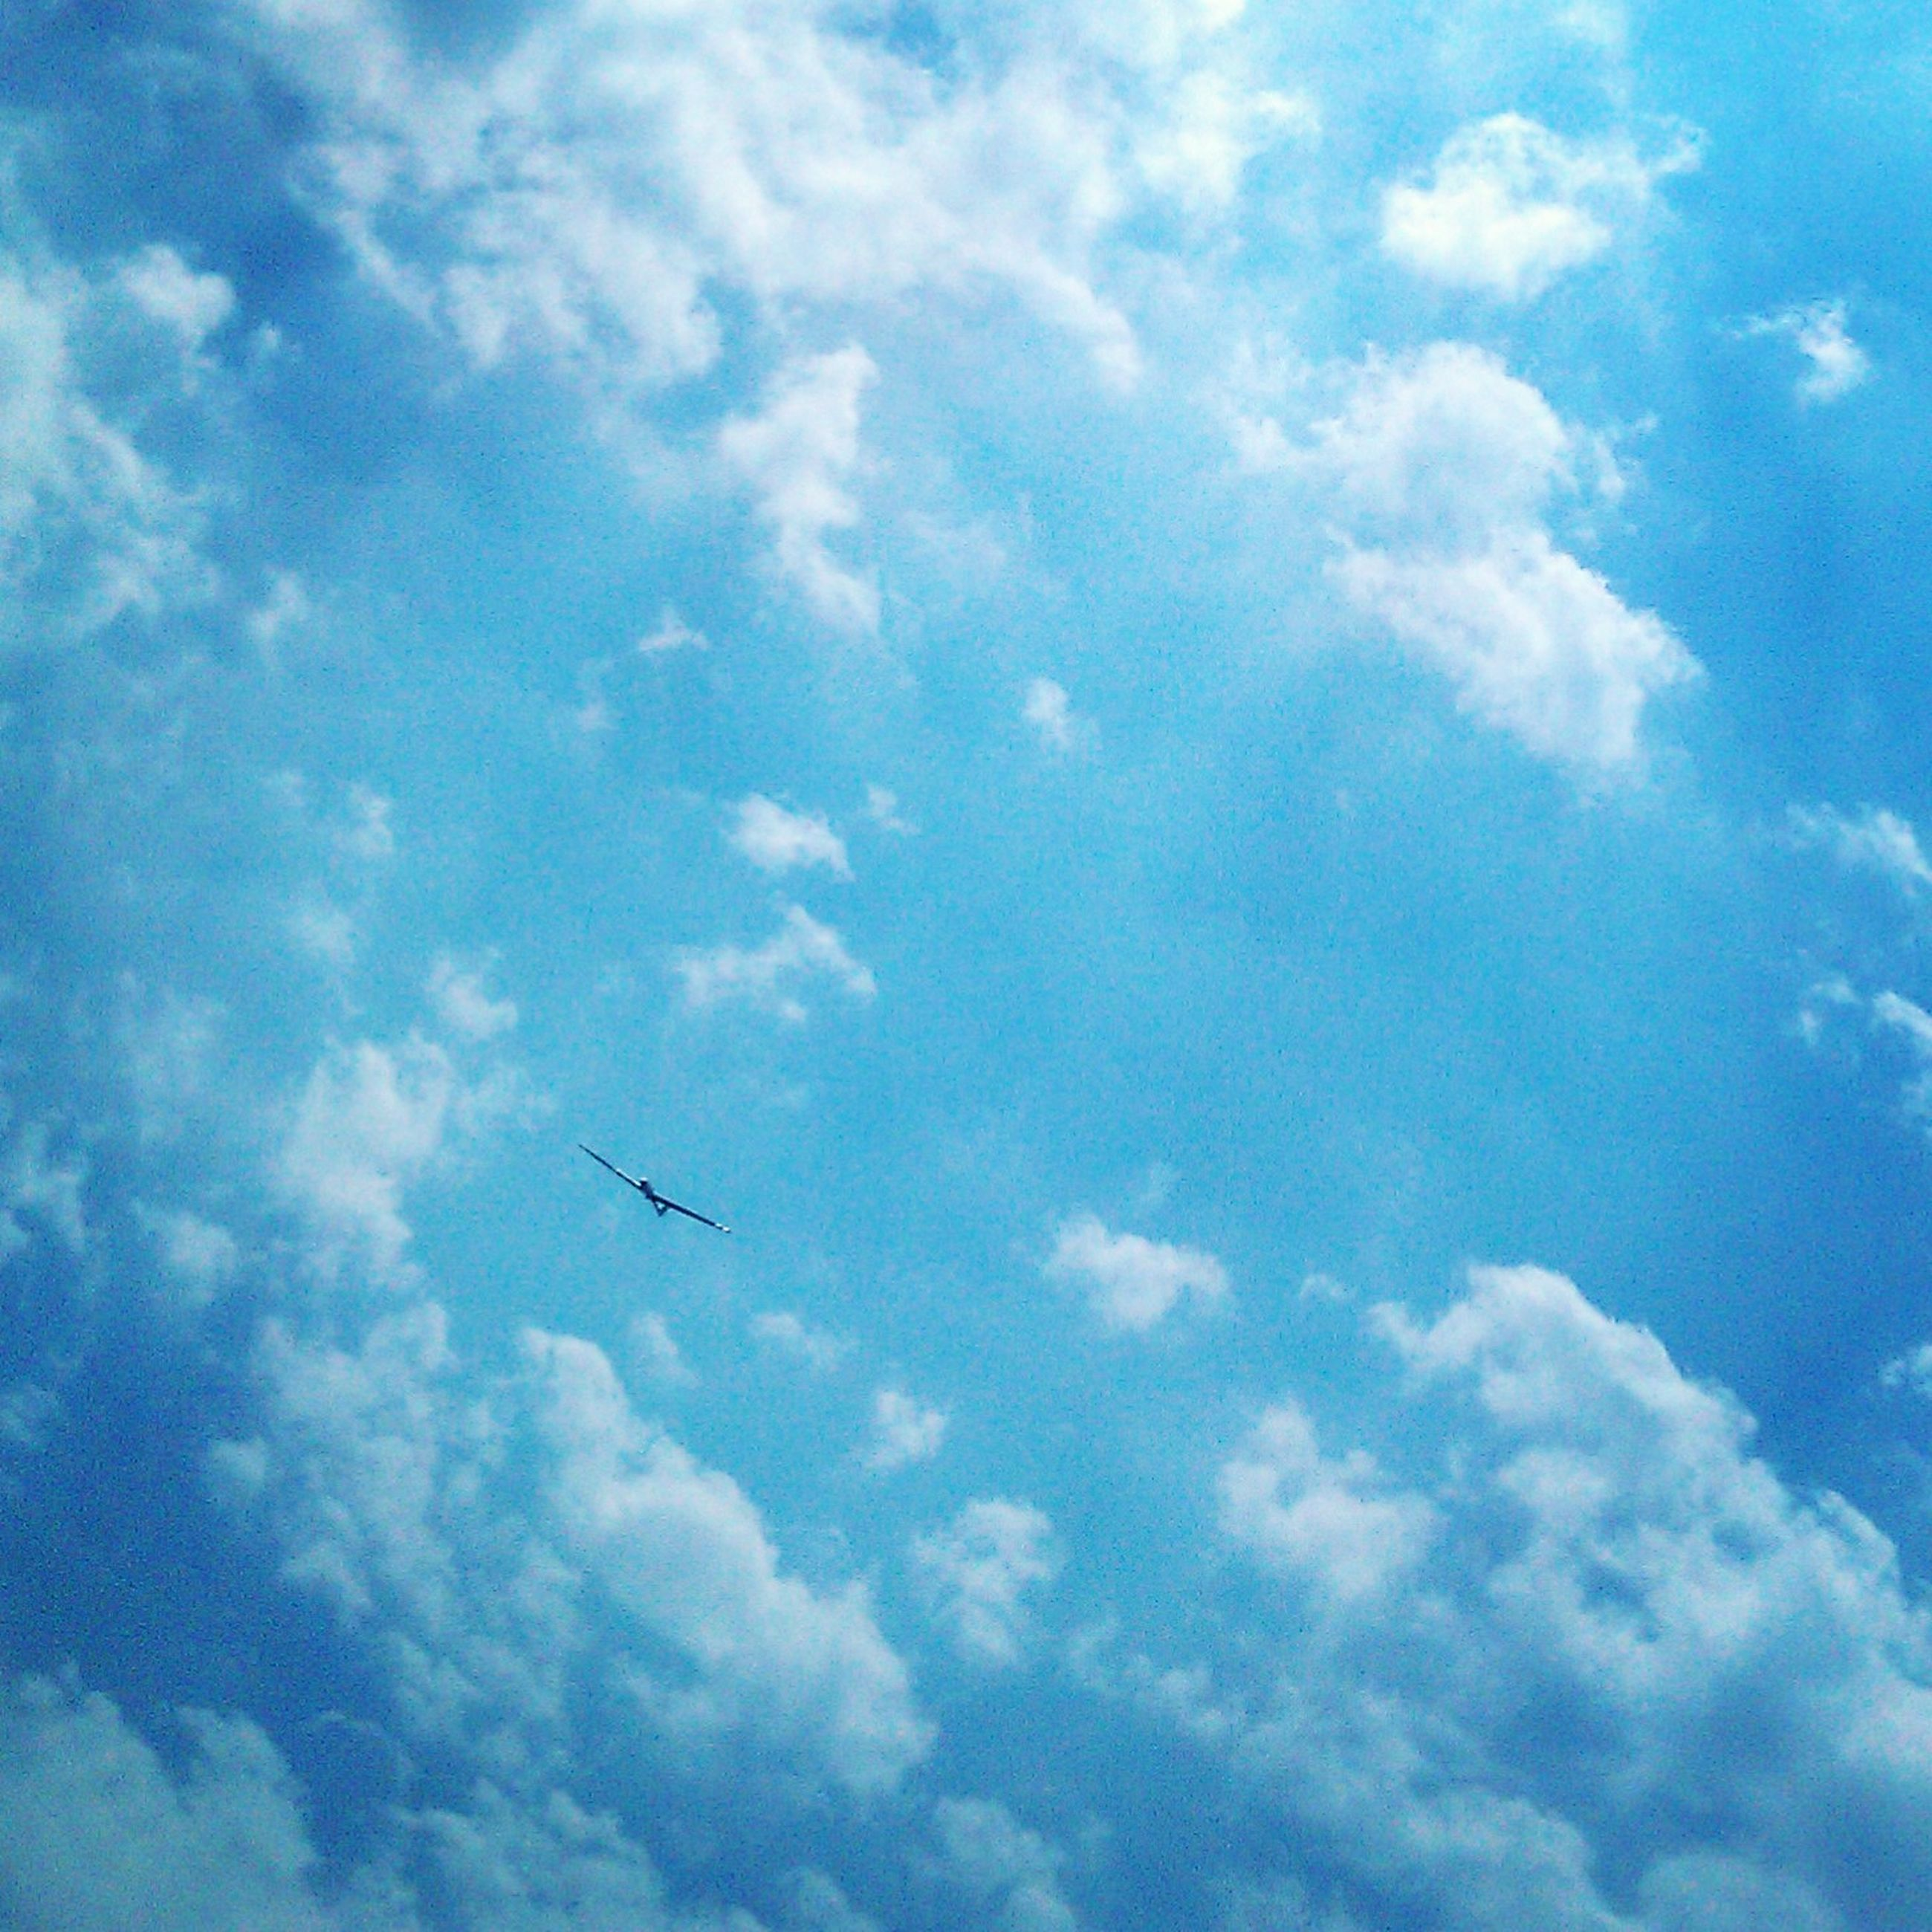 low angle view, sky, cloud - sky, blue, flying, transportation, airplane, air vehicle, mid-air, cloud, nature, mode of transport, cloudy, beauty in nature, sky only, tranquility, scenics, day, outdoors, cloudscape